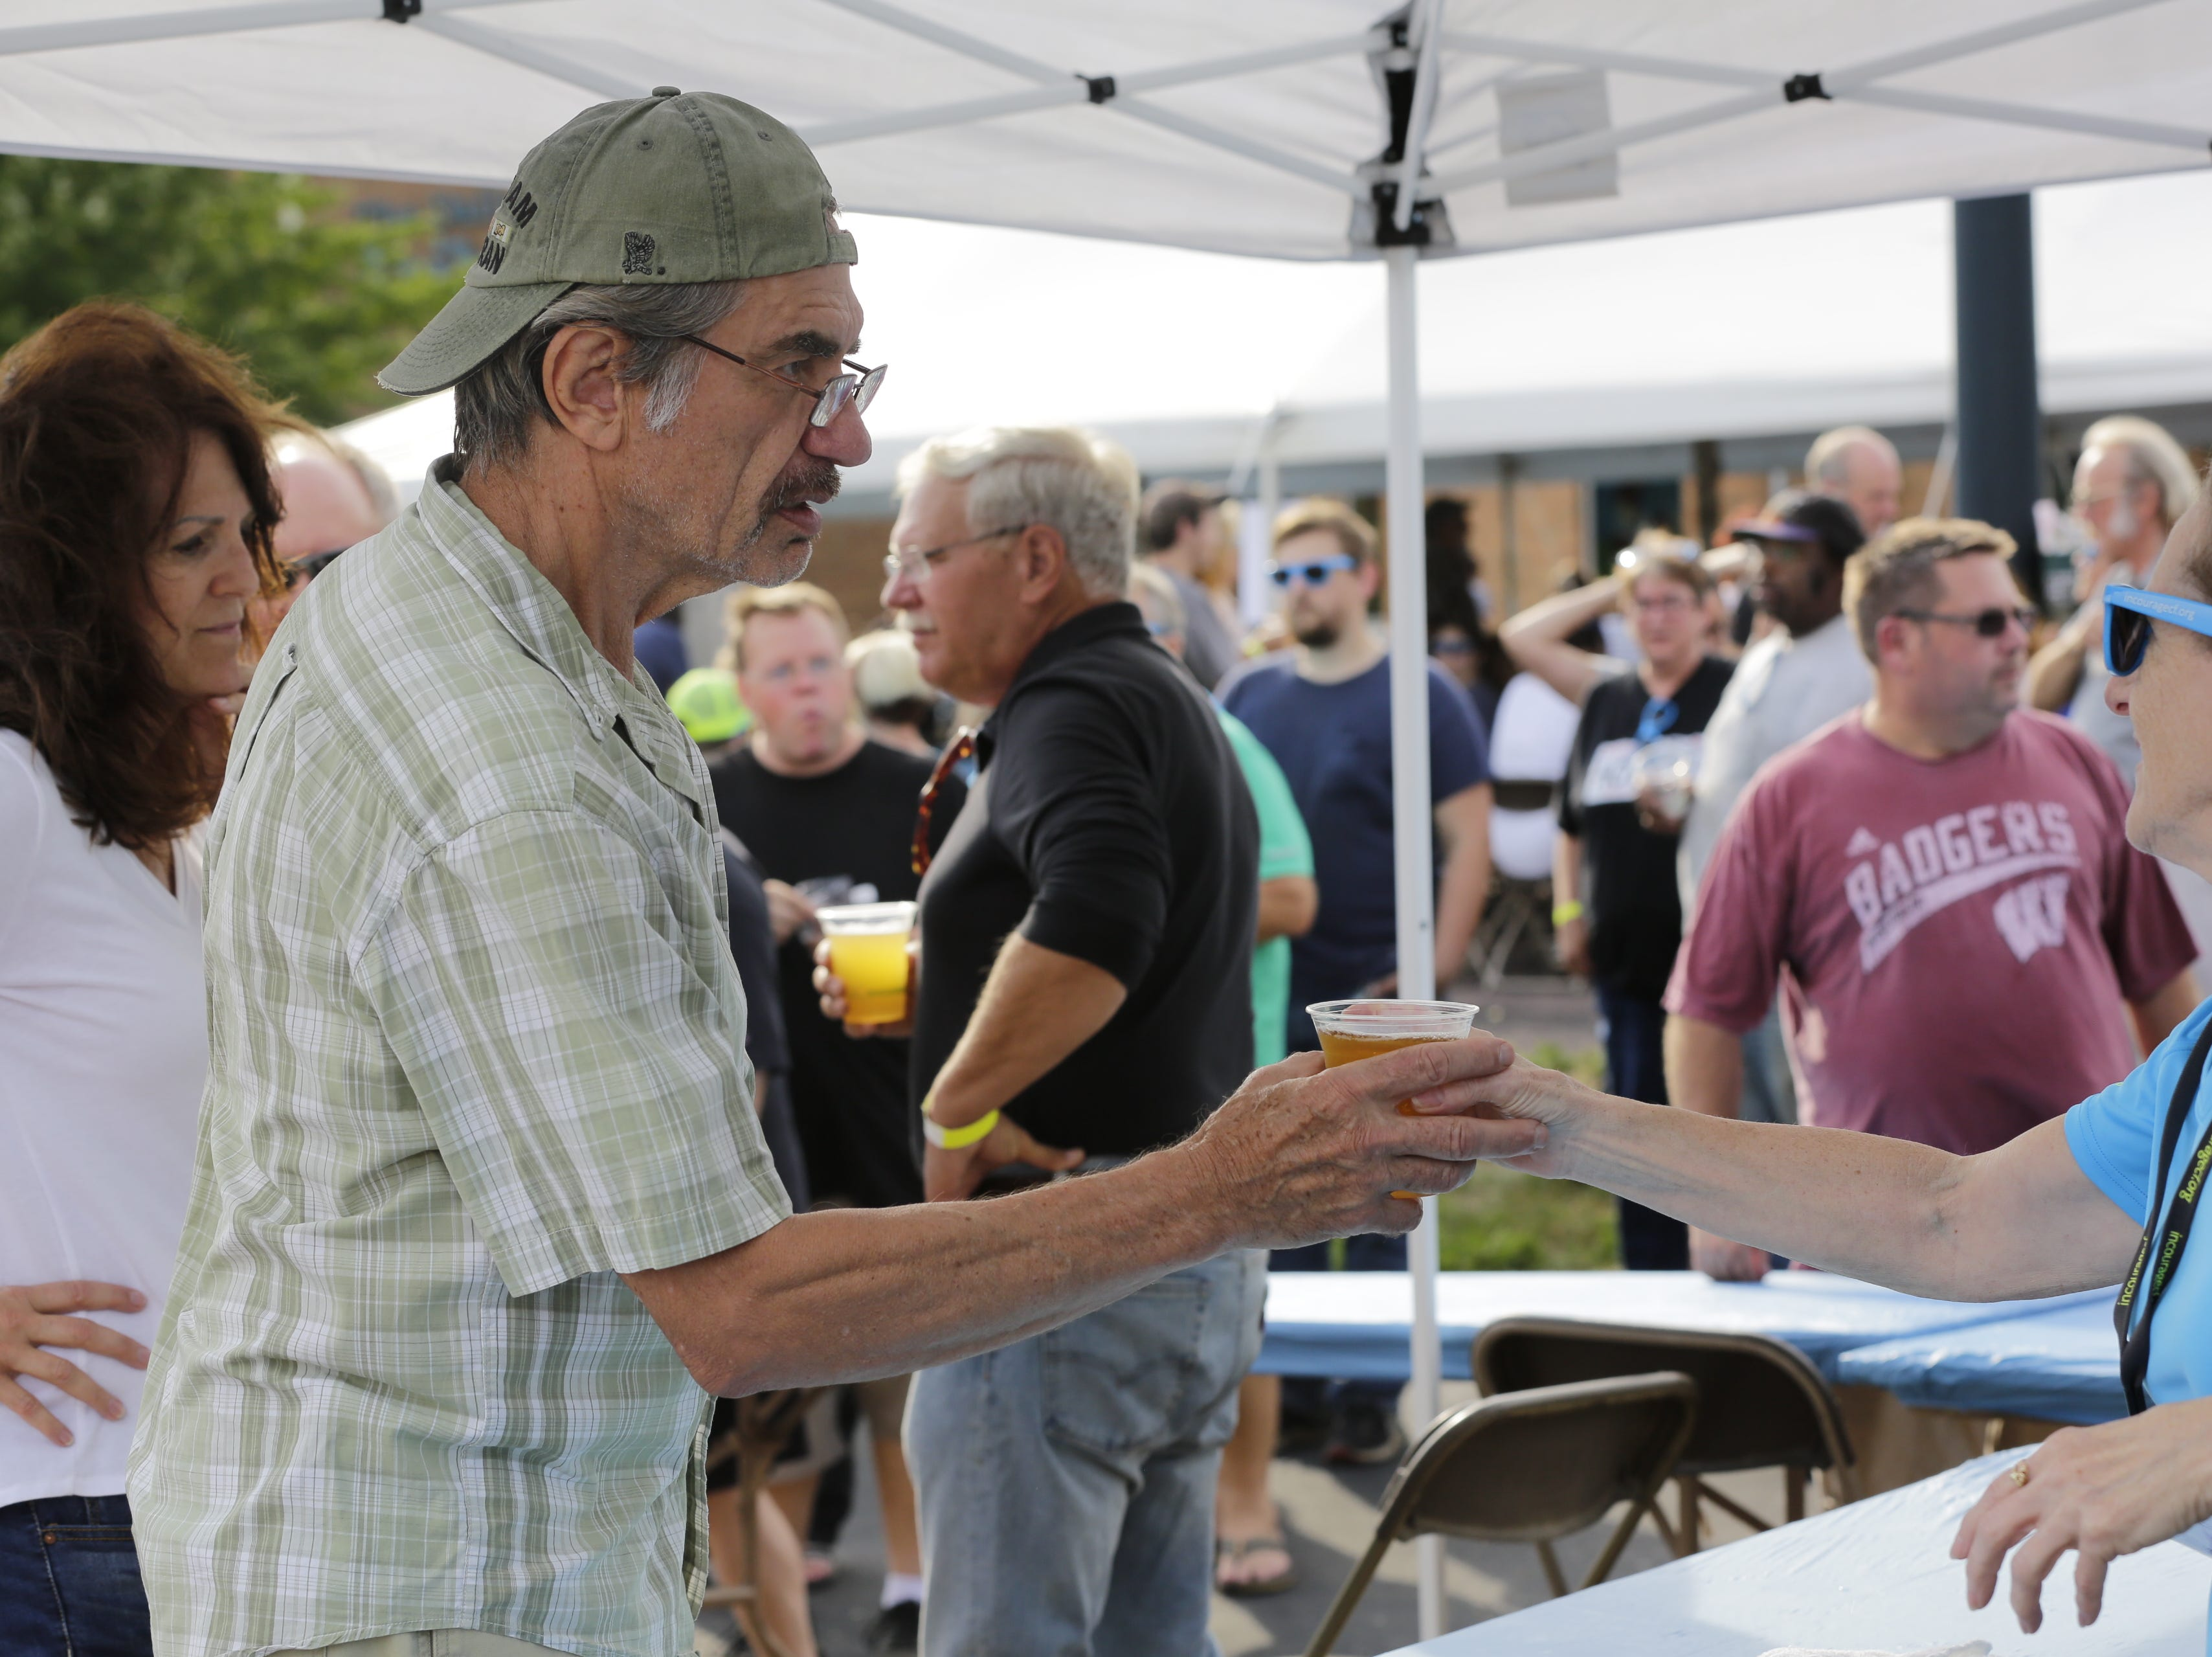 Bob Jazdzewski orders a beer at the Wisconsin Rapids community picnic on First Avenue South and Johnson Street Wednesday, August 1, 2018.